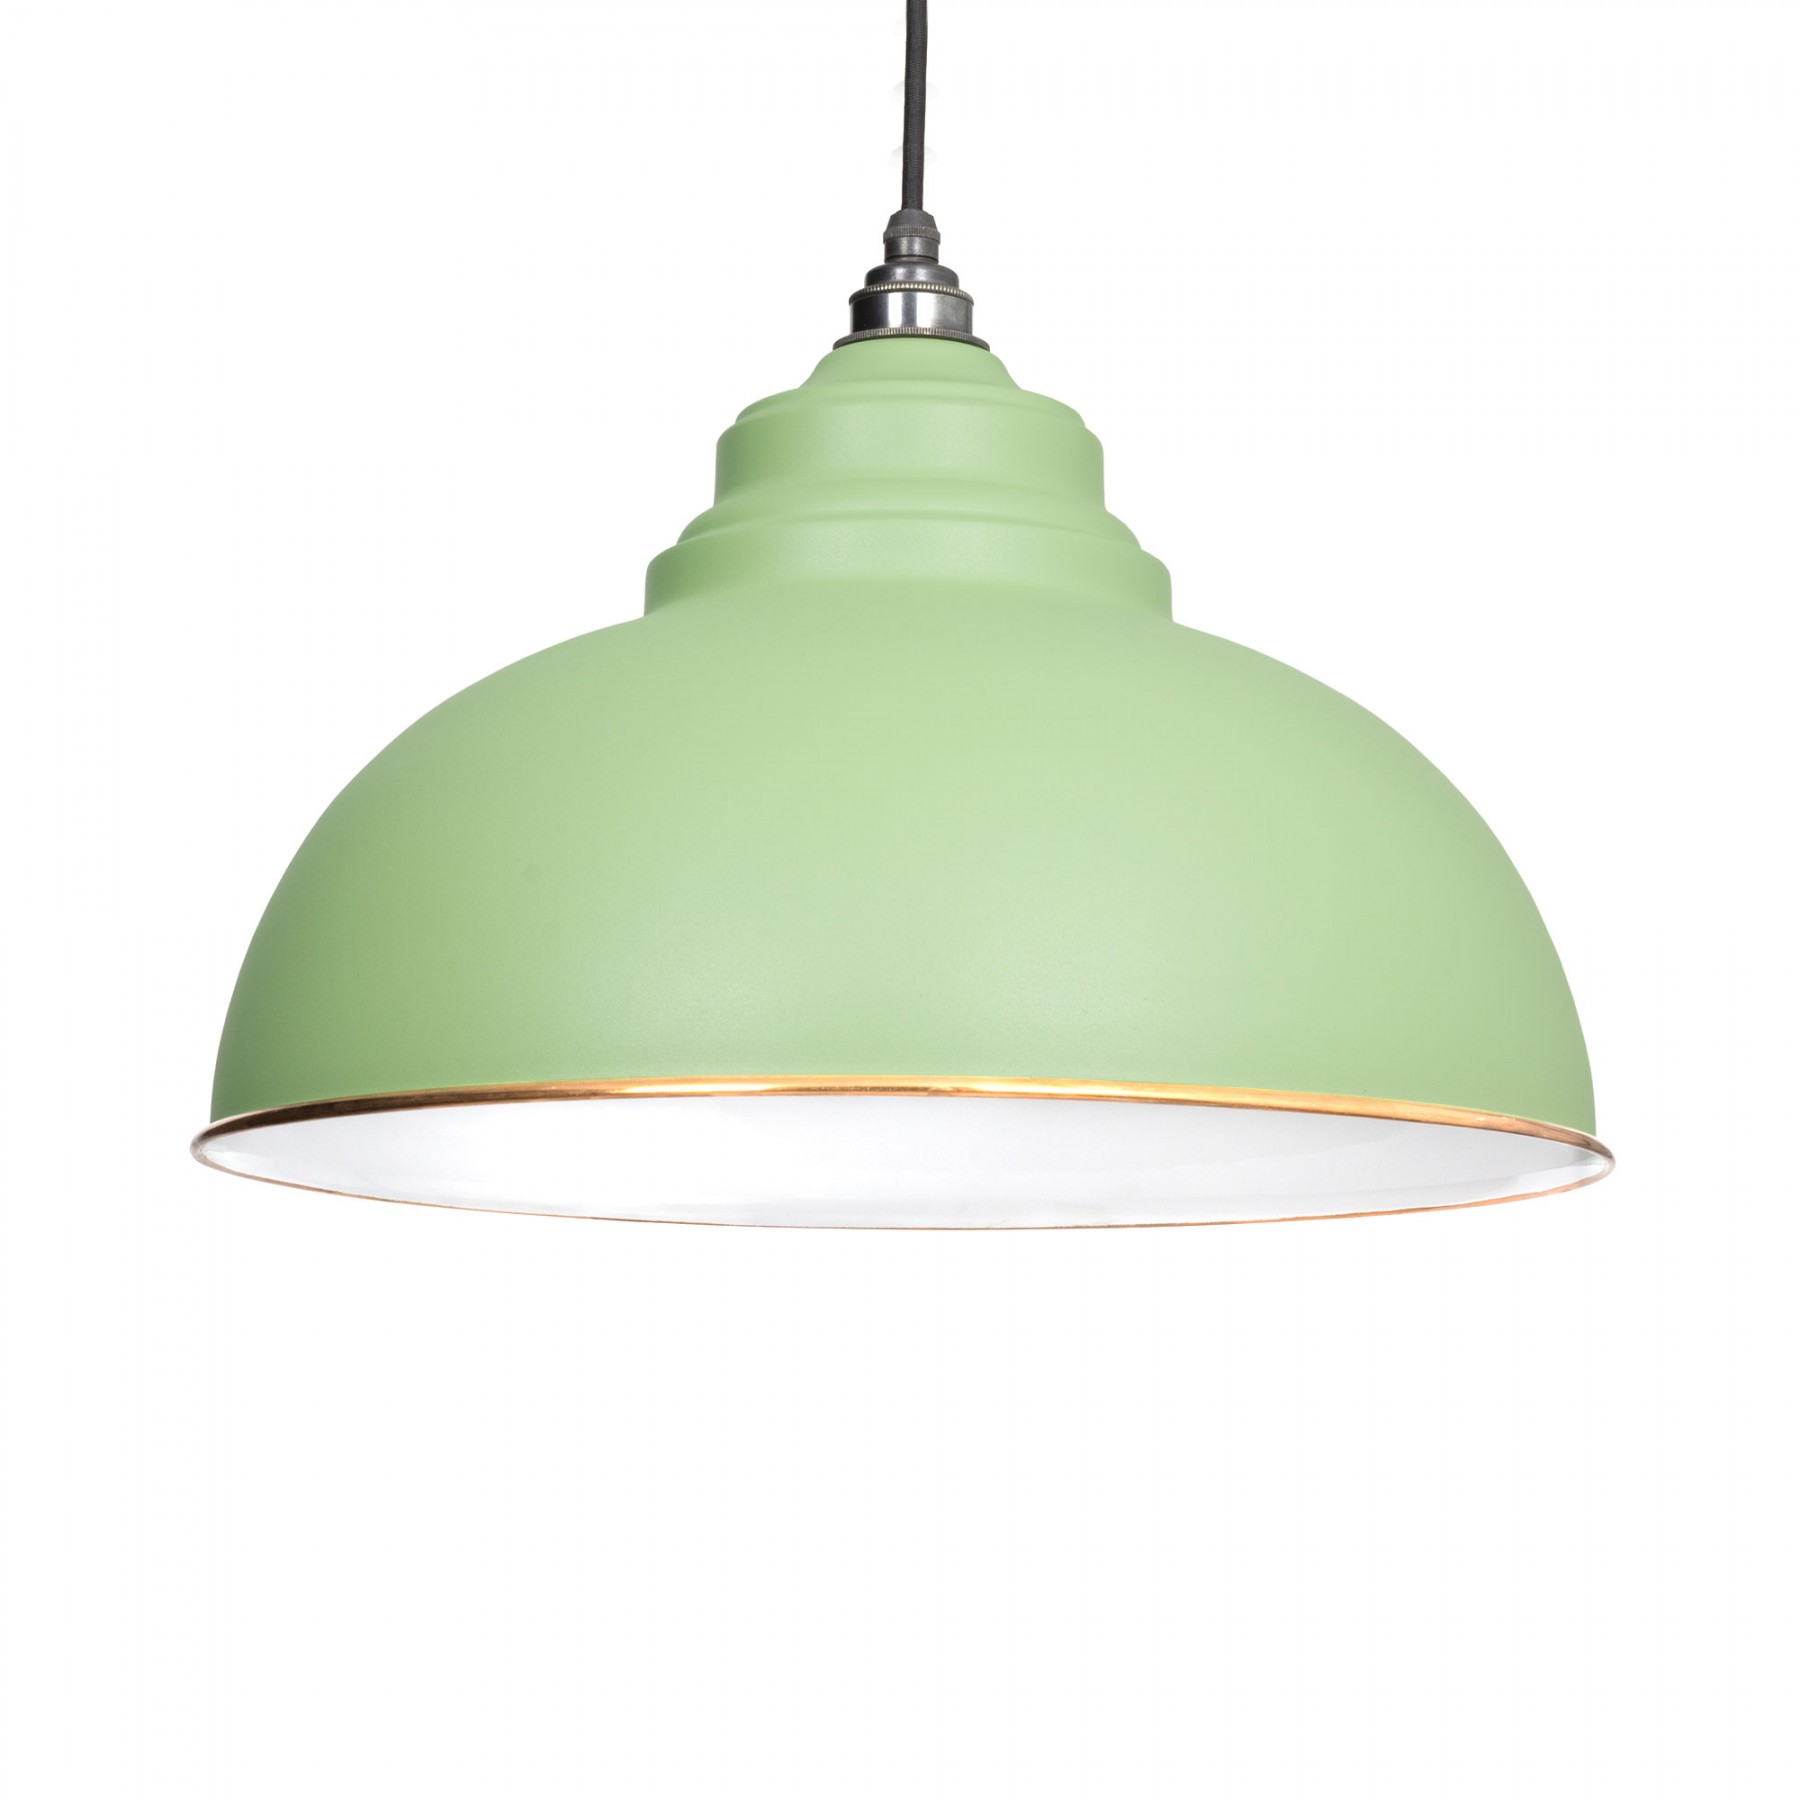 Sage green harborne pendant light period home style harborne pendant light in sage green aloadofball Image collections